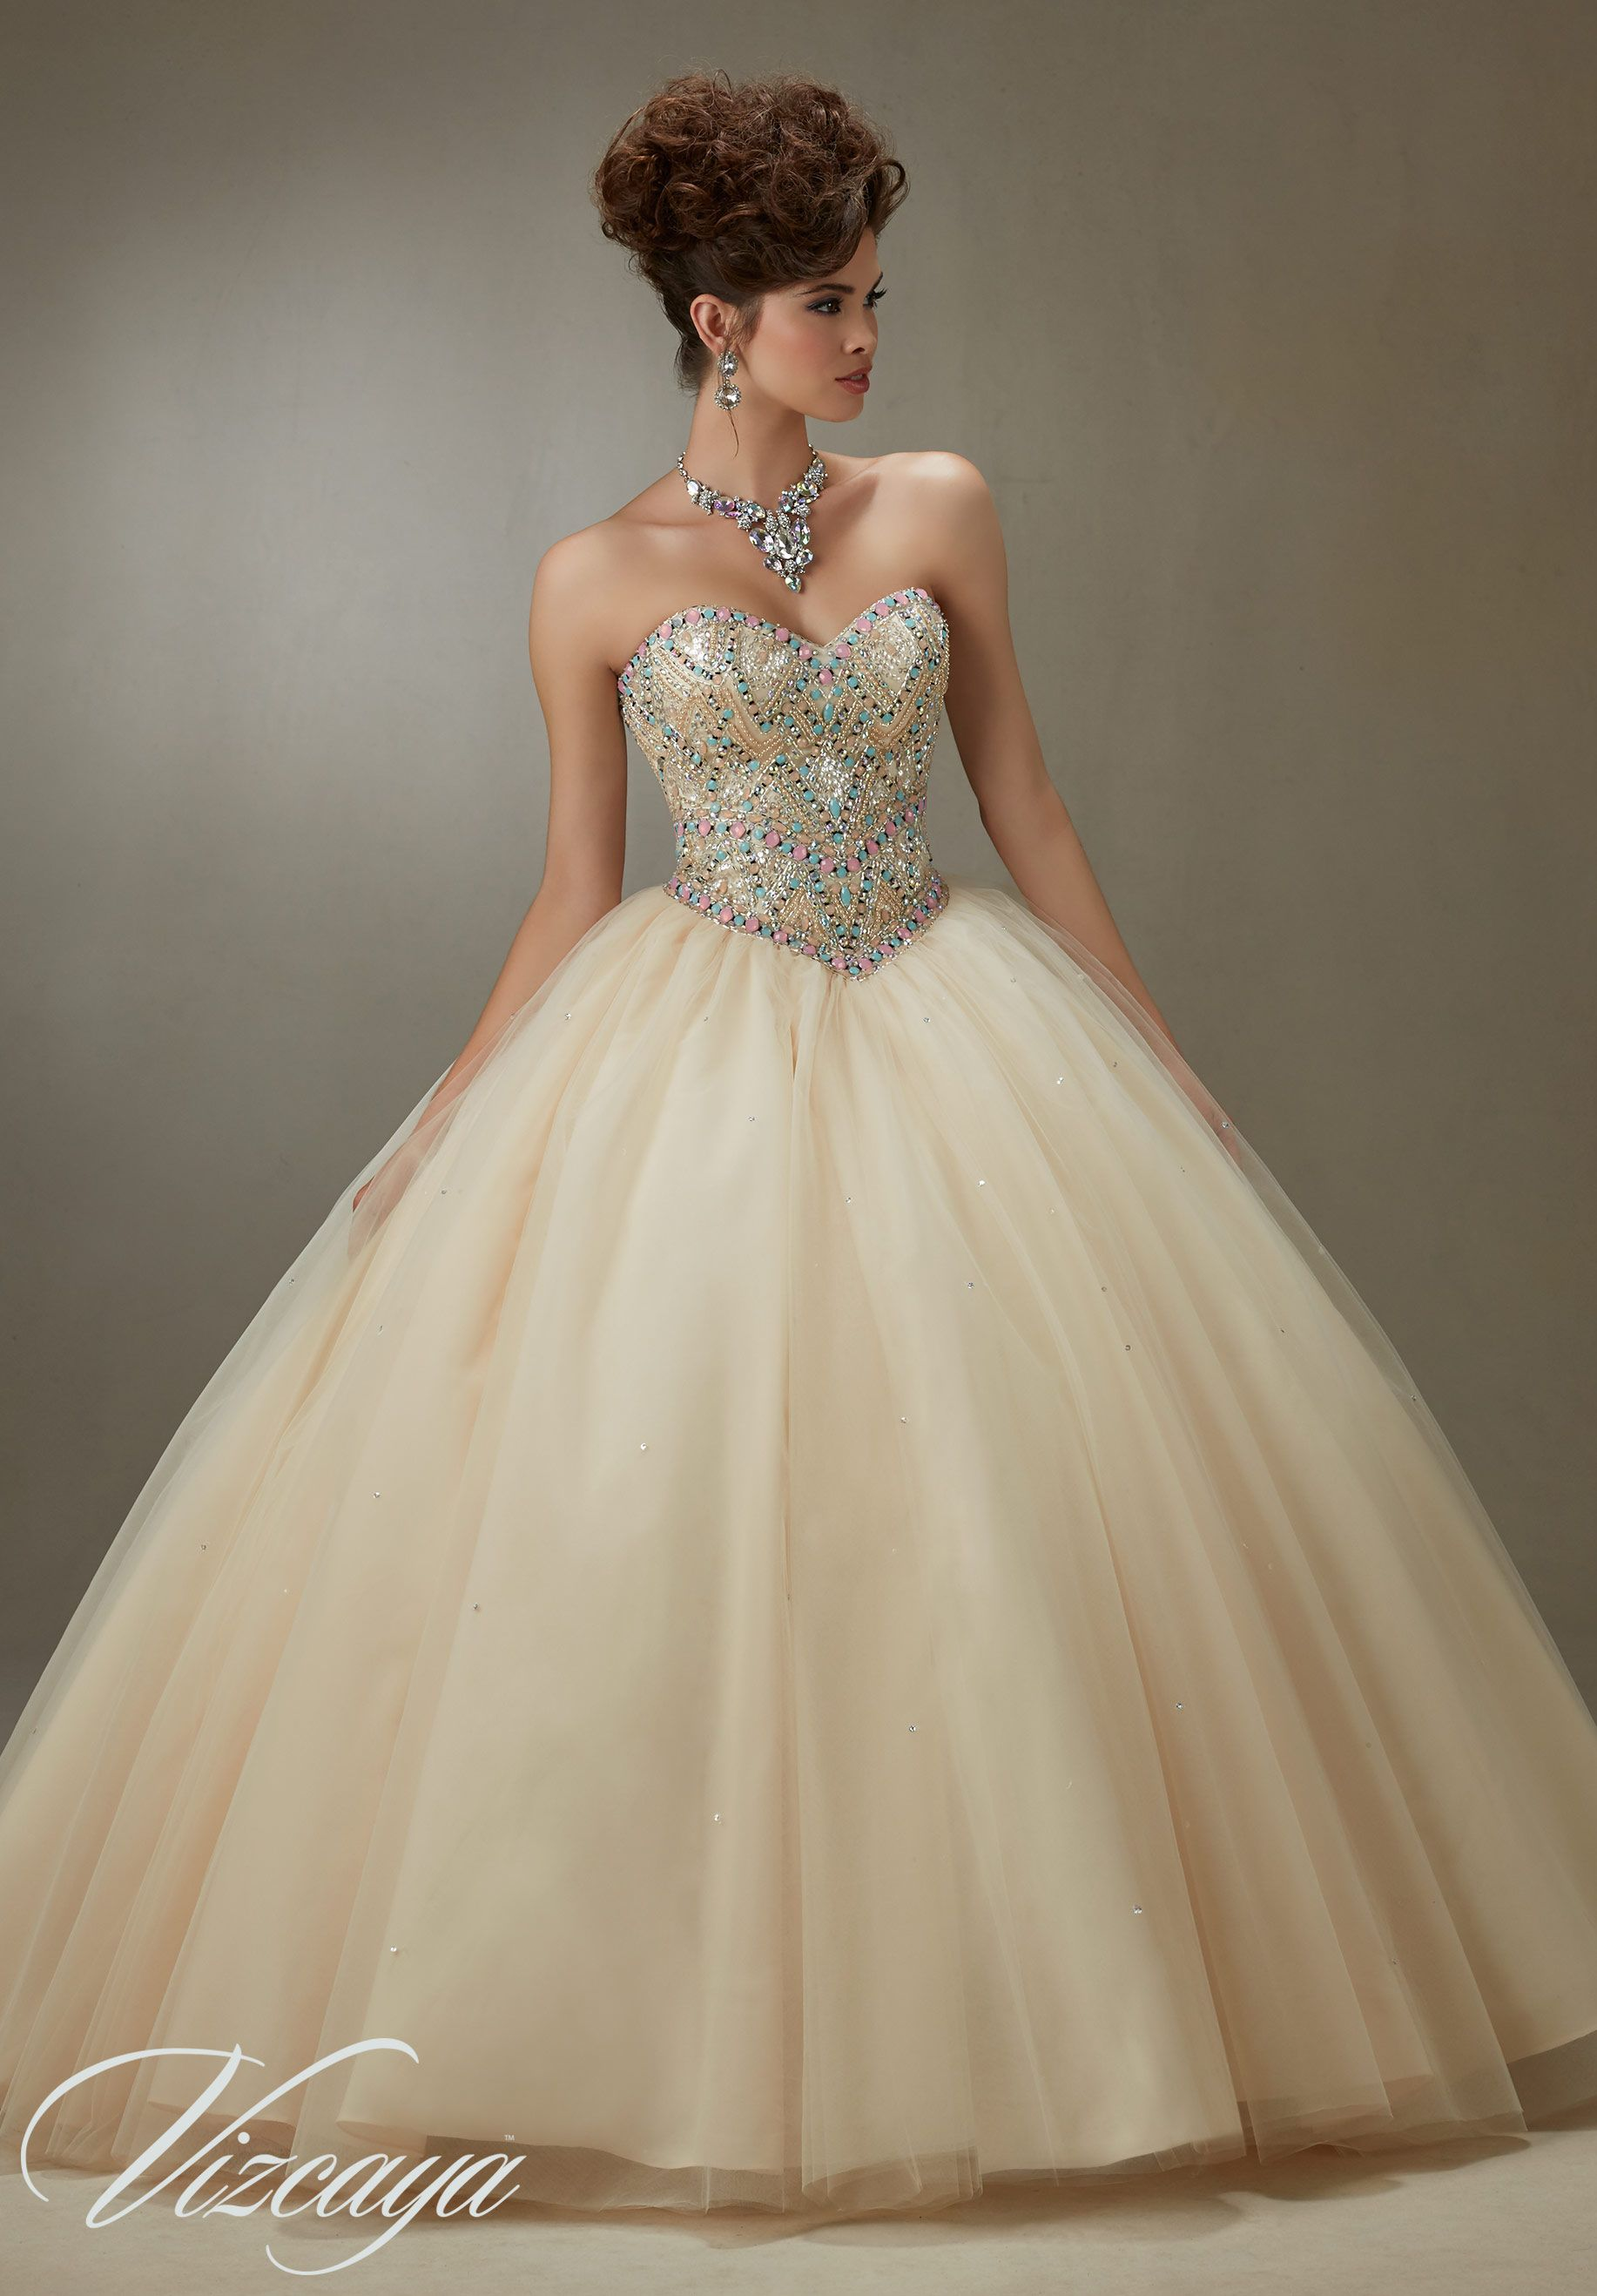 Quinceanera Dress 89076 Sugar Coated Stones on a Tulle Ball Gown ...